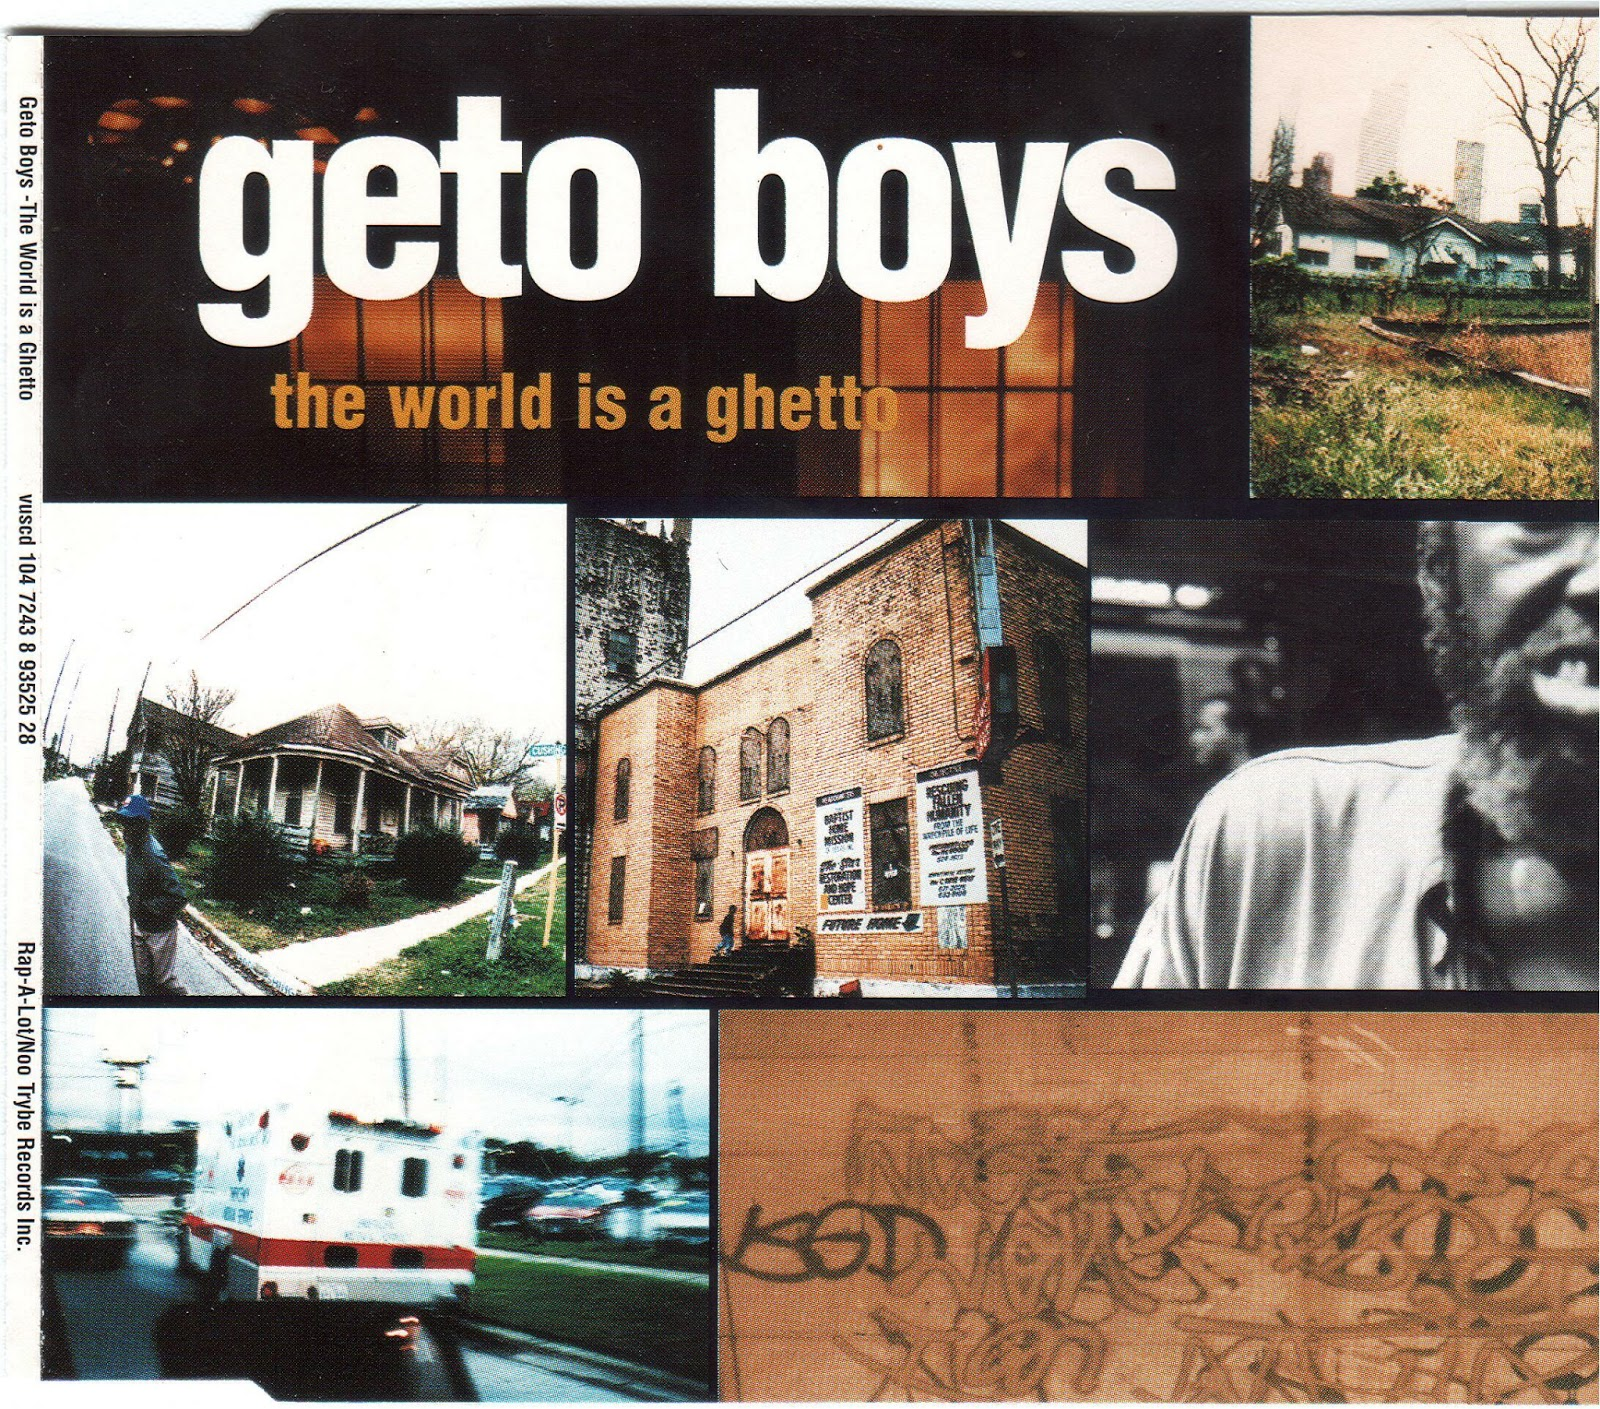 Geto Boys – The World Is A Ghetto (CDS) (1996) (192 kbps)